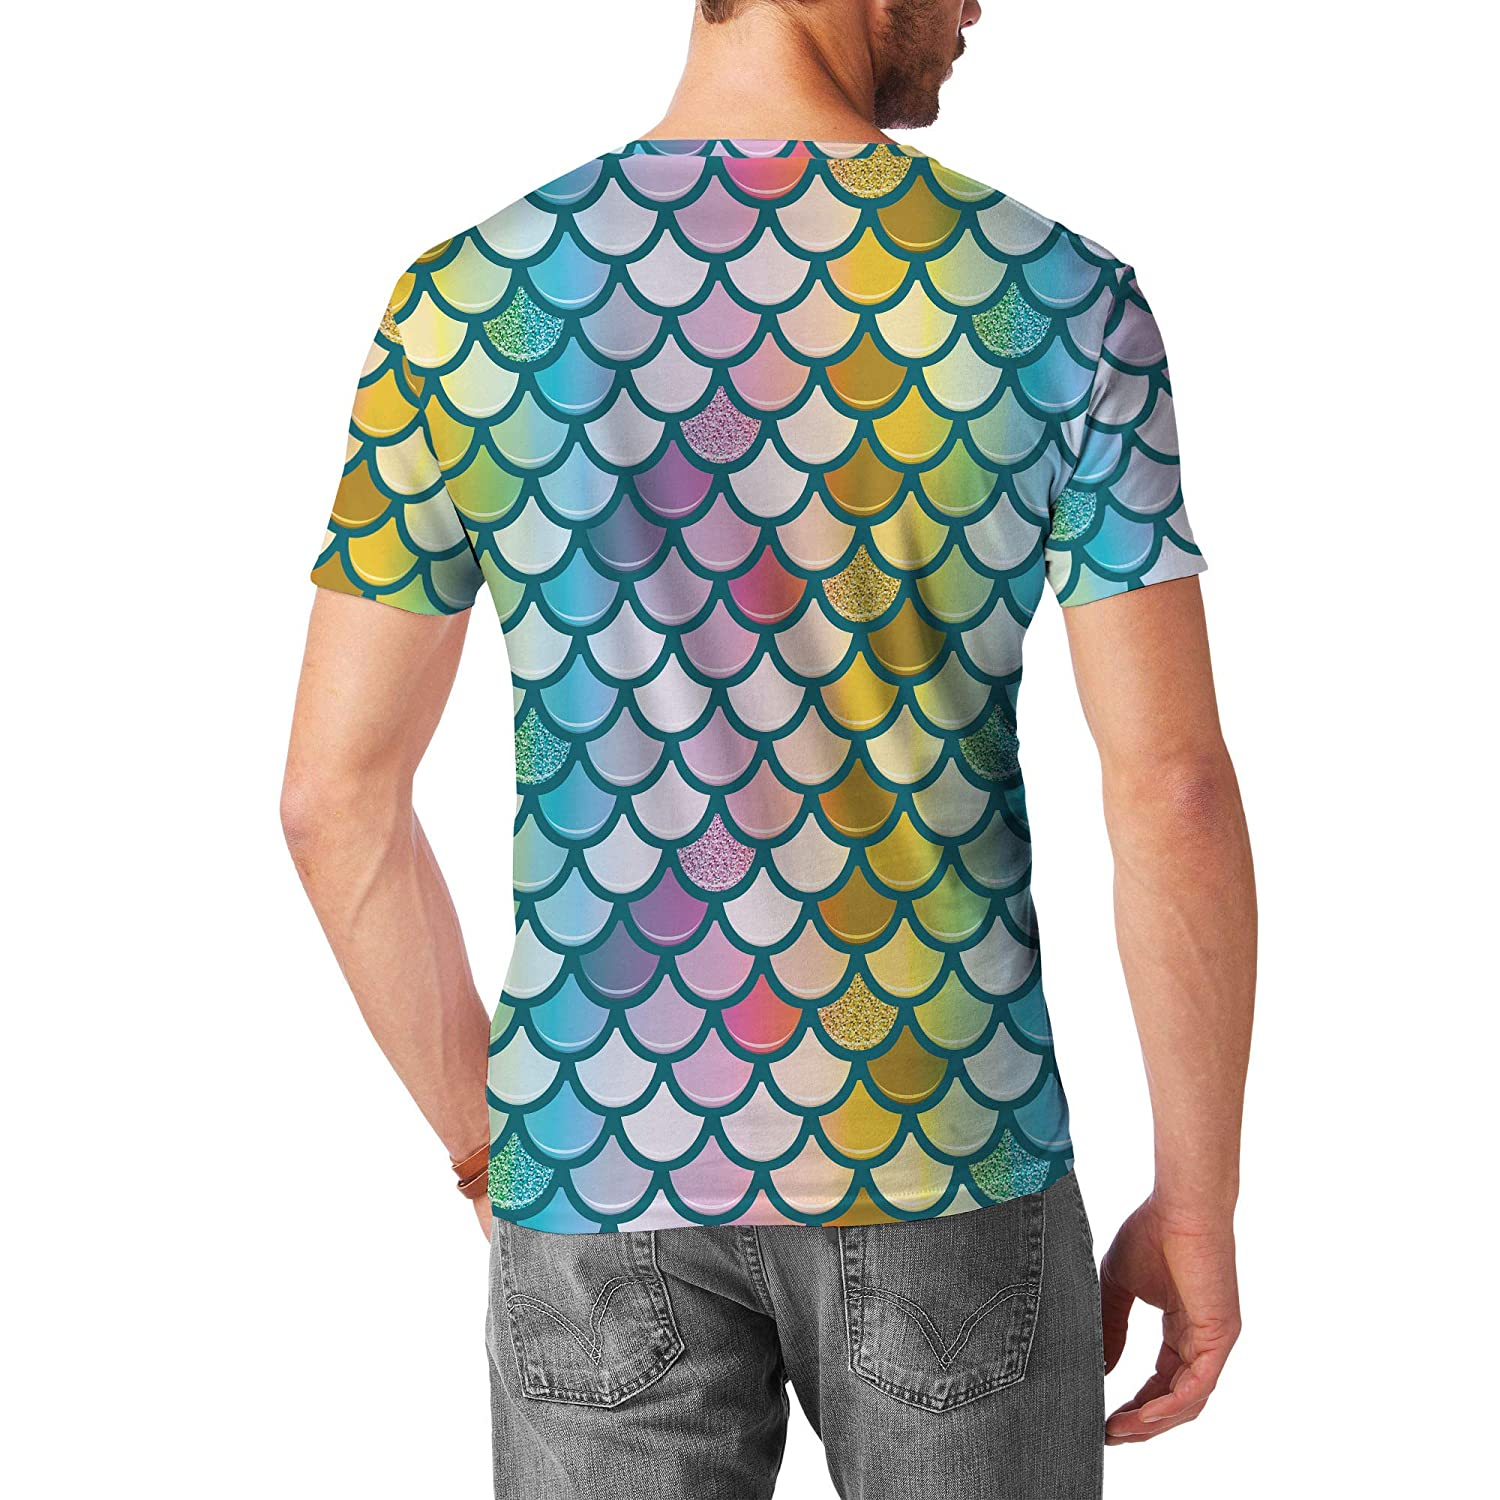 Queen of Cases Mermaid Glitter Rainbow Tail Mens Cotton Blend T-Shirt